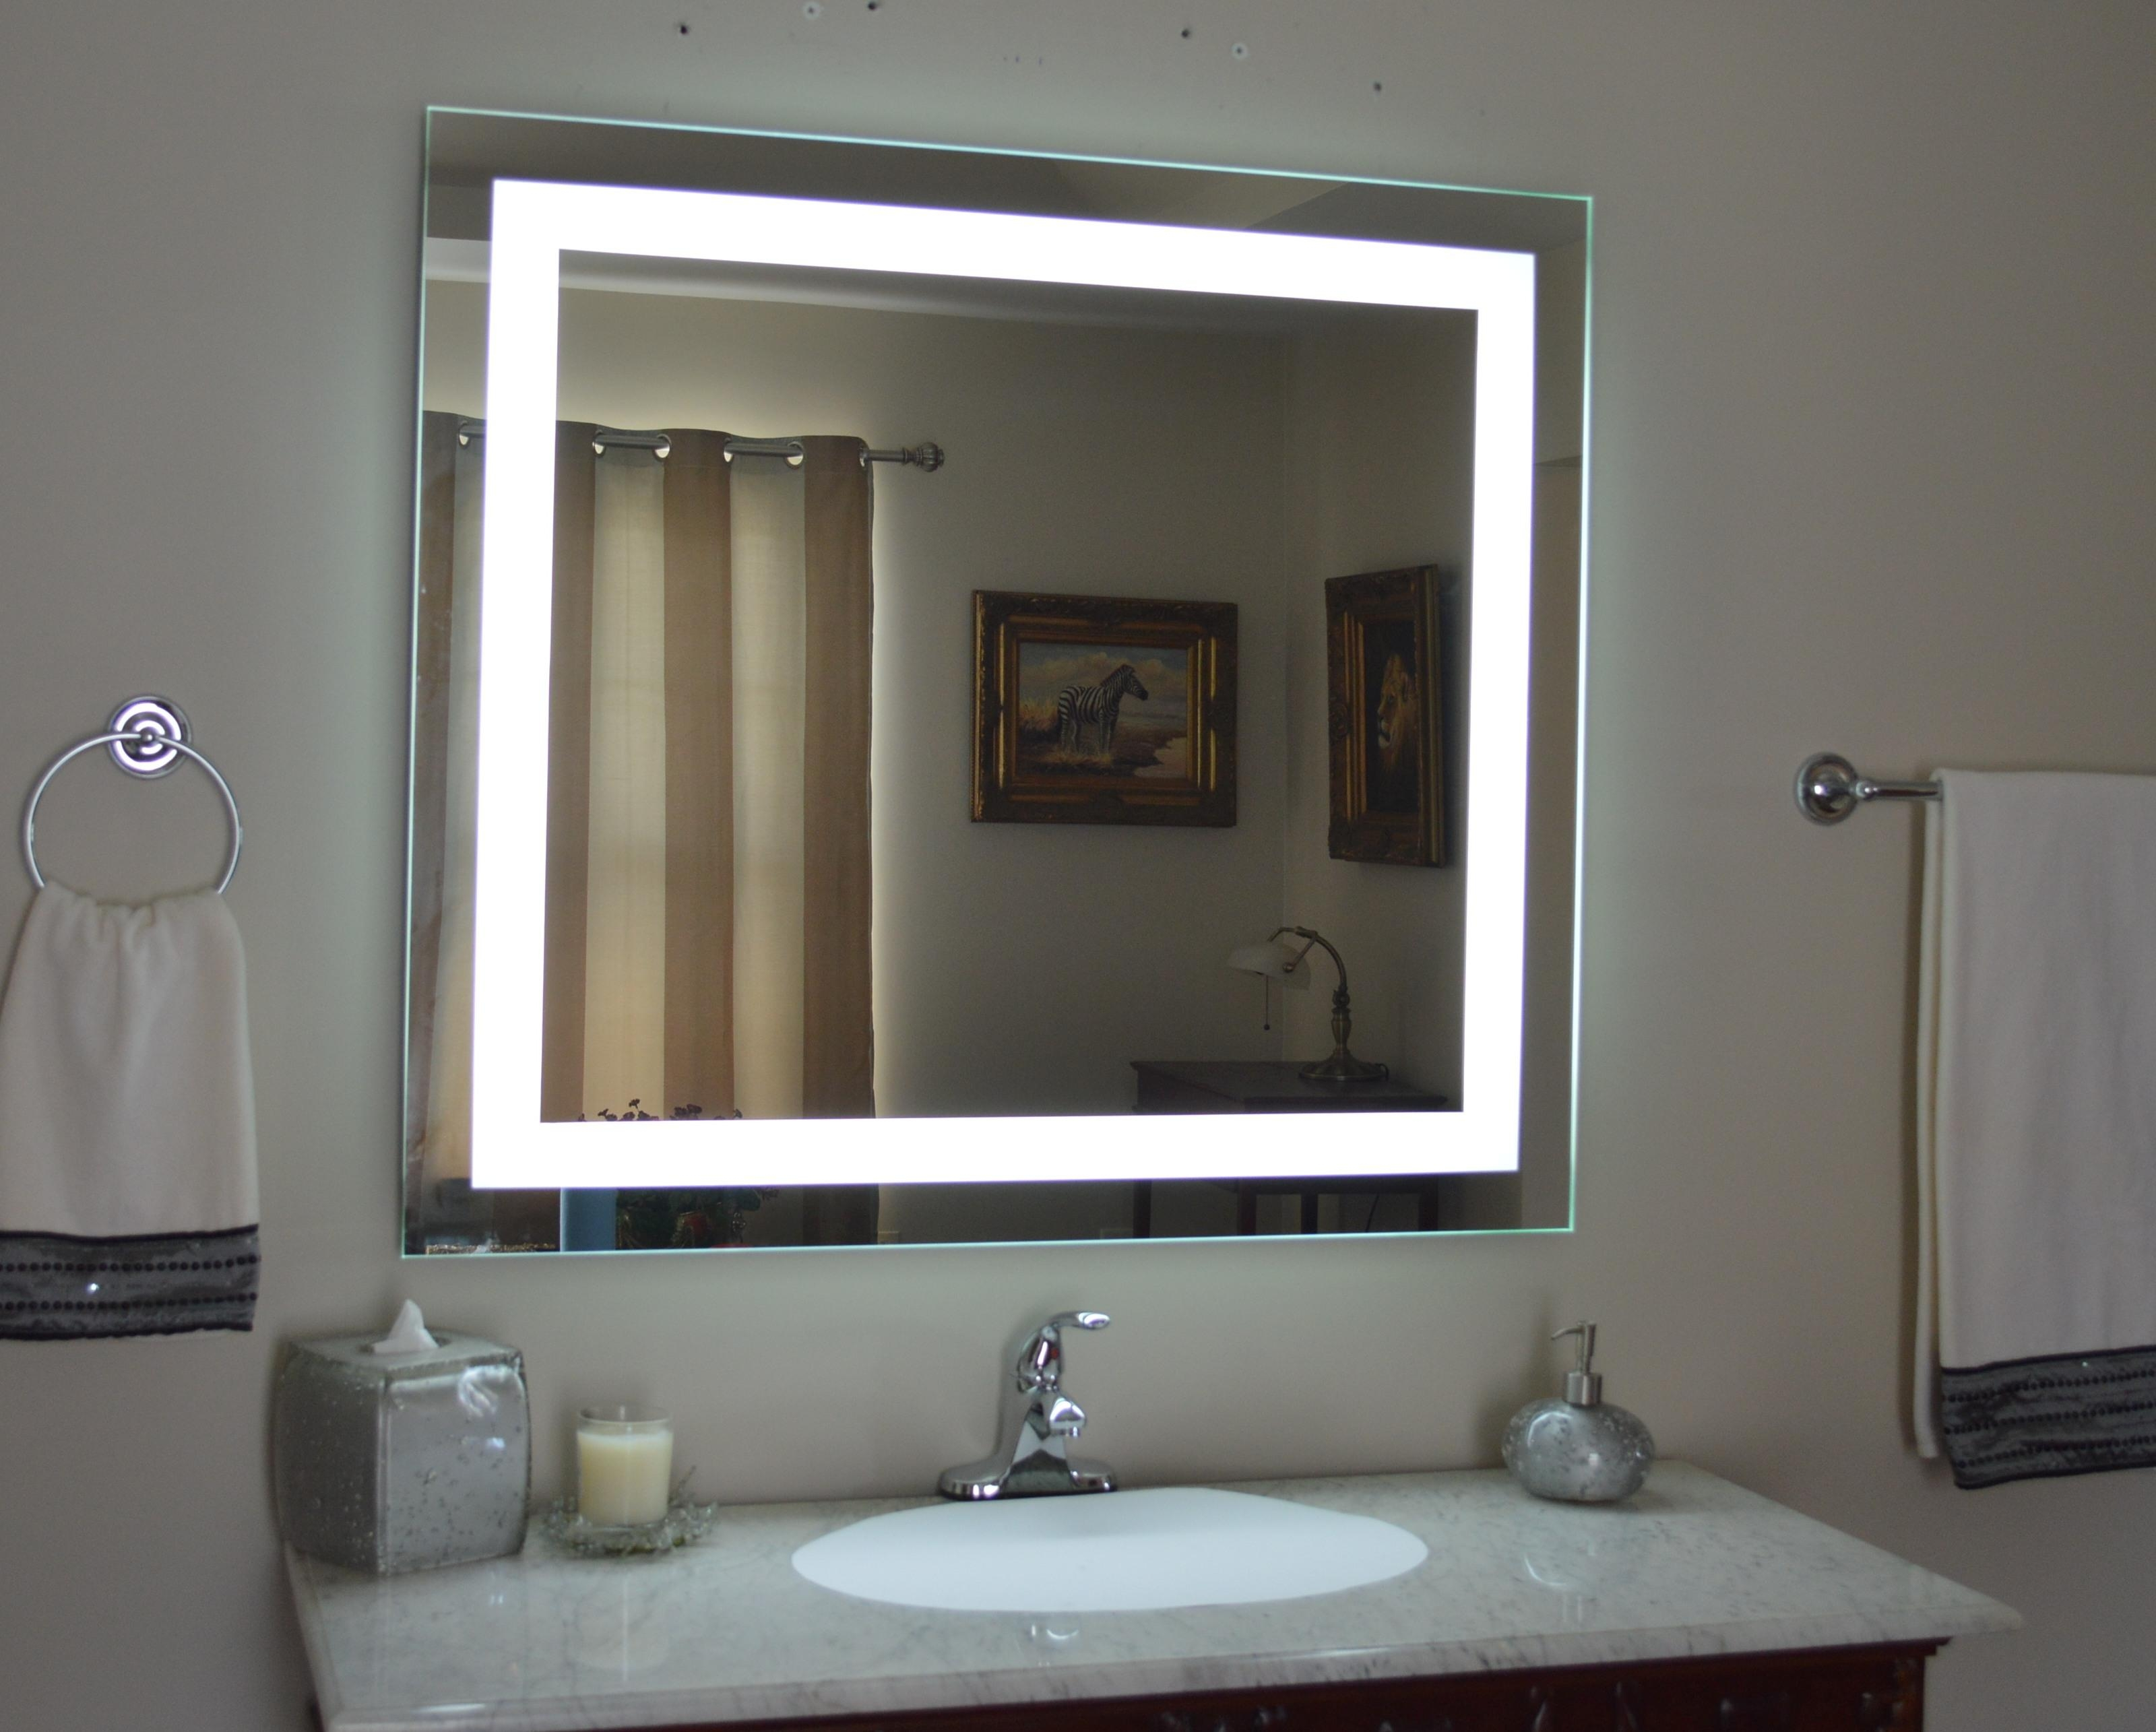 Lighted Vanity Mirror With Bathroom Lighted Vanity Mirrors (Image 18 of 20)